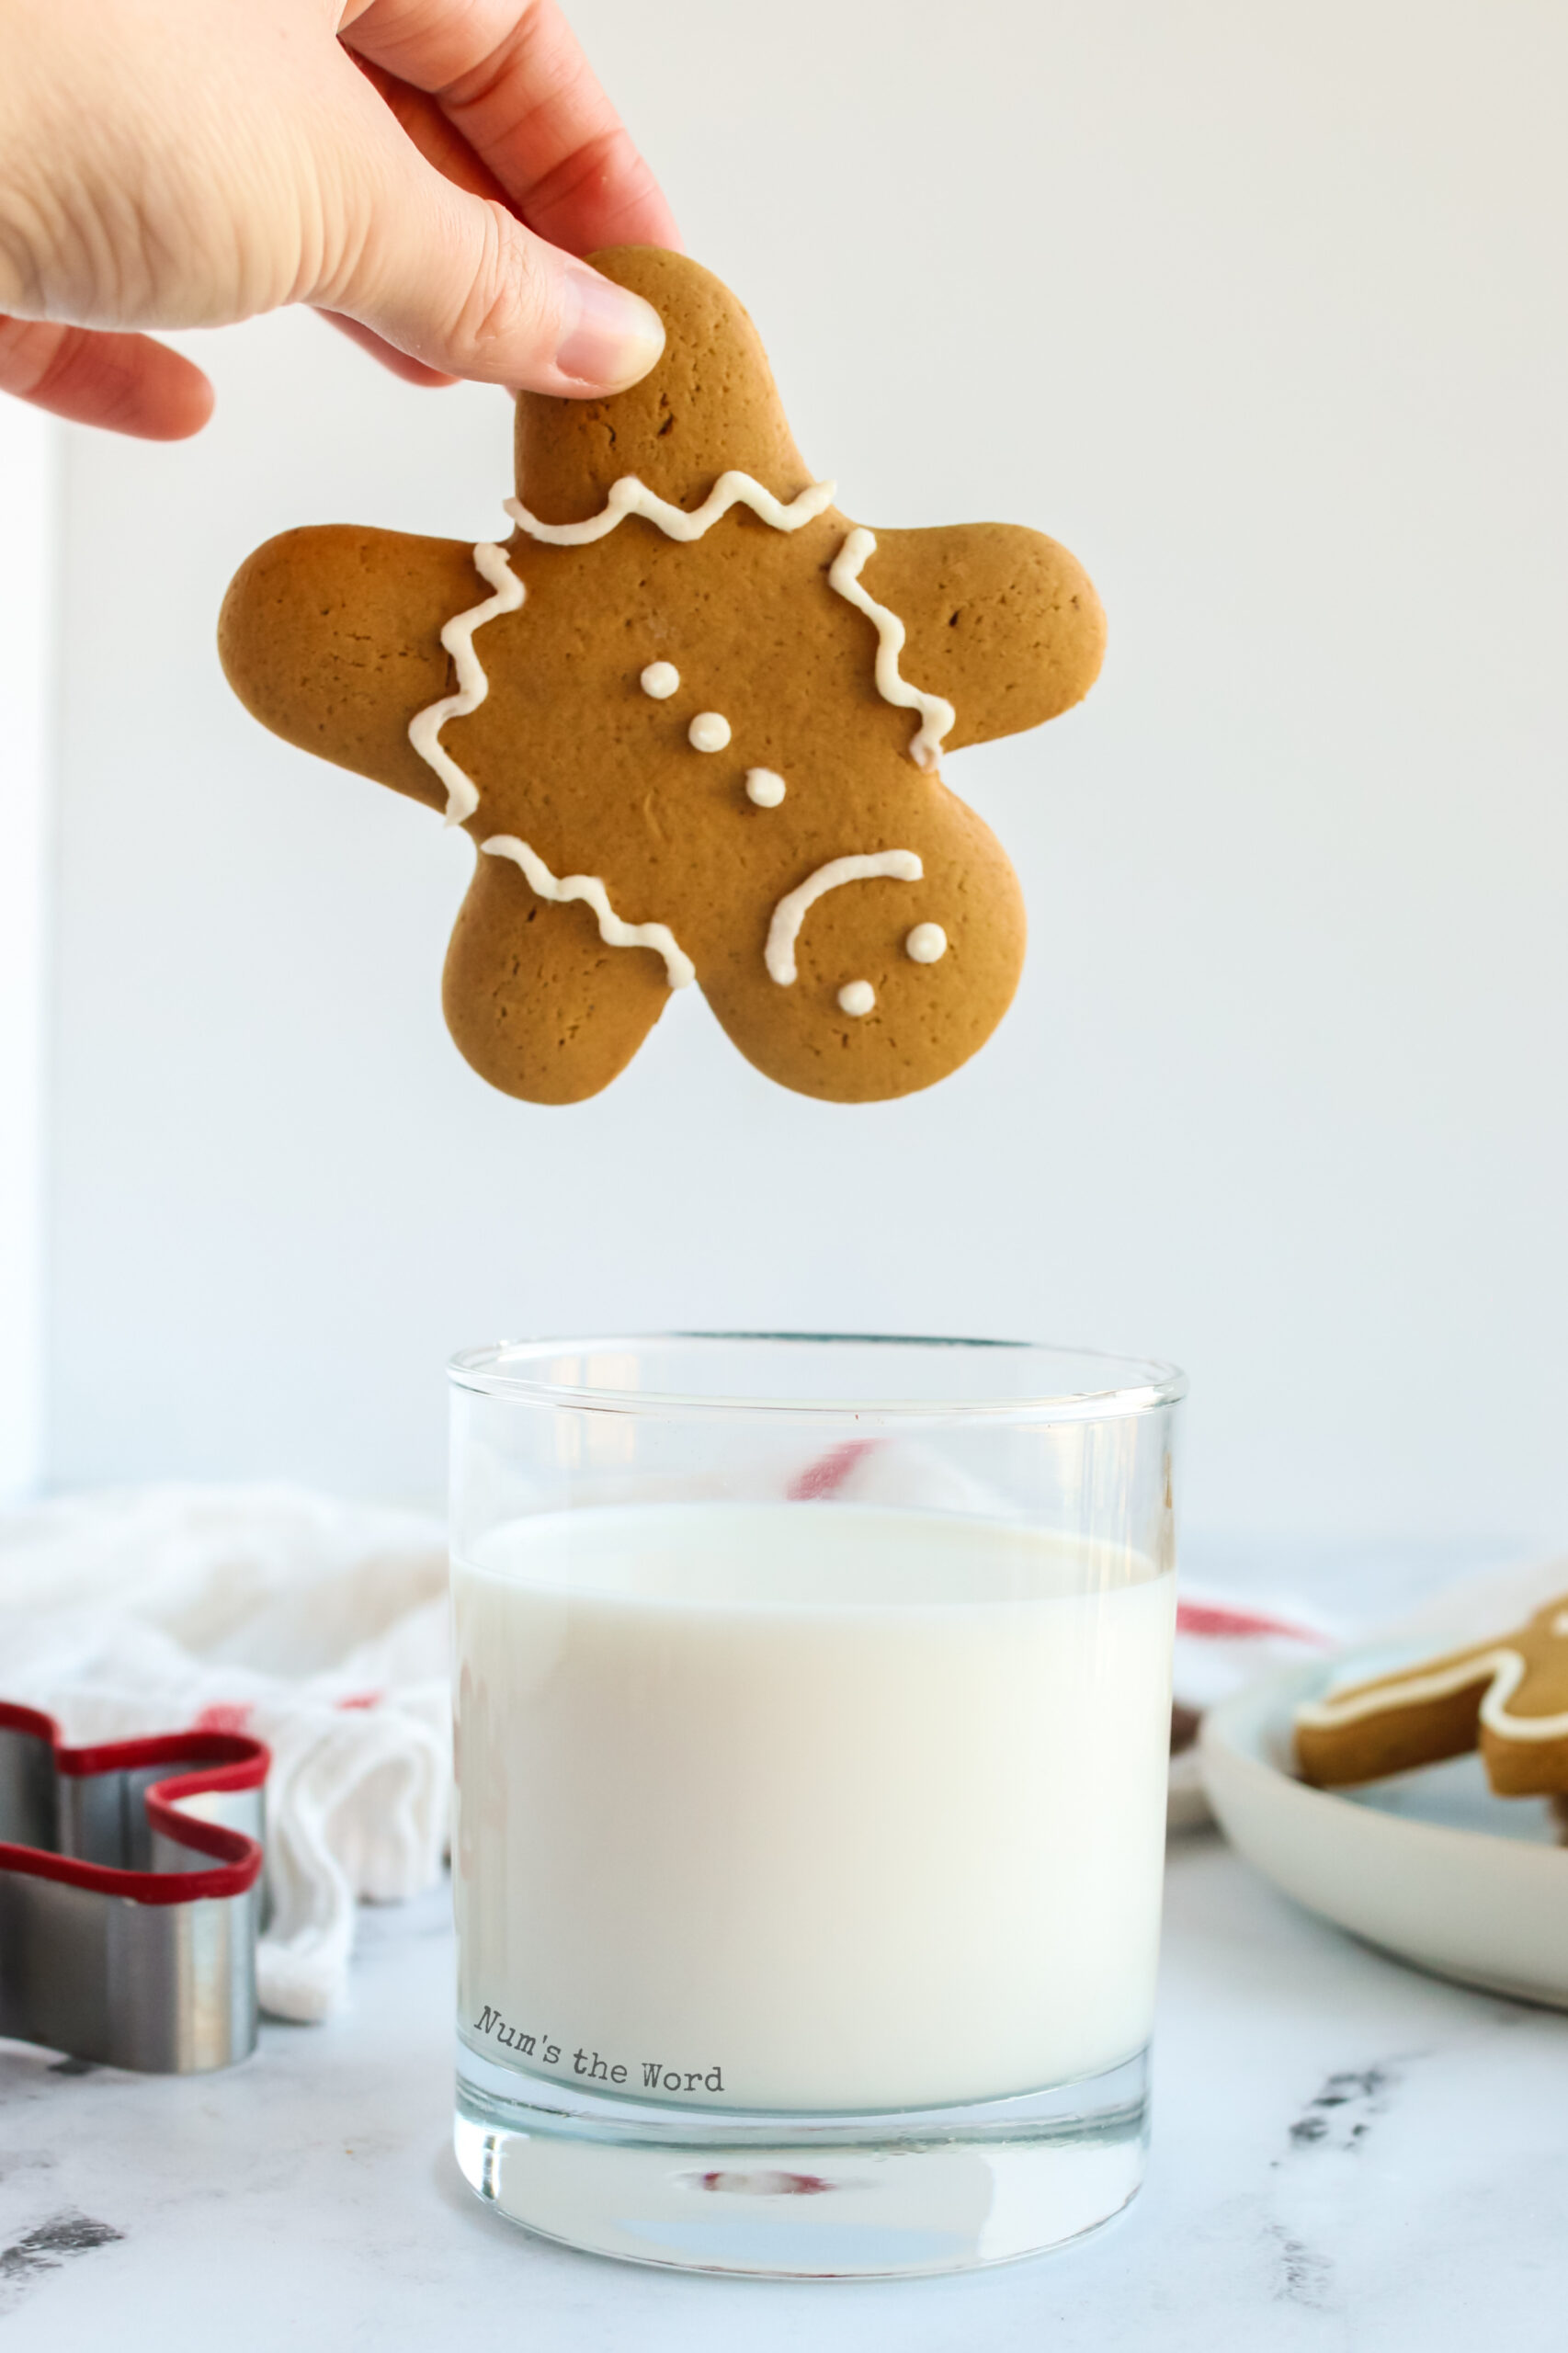 decorated gingerbread cookie being held upside down and ready to be dunked into a glass of milk